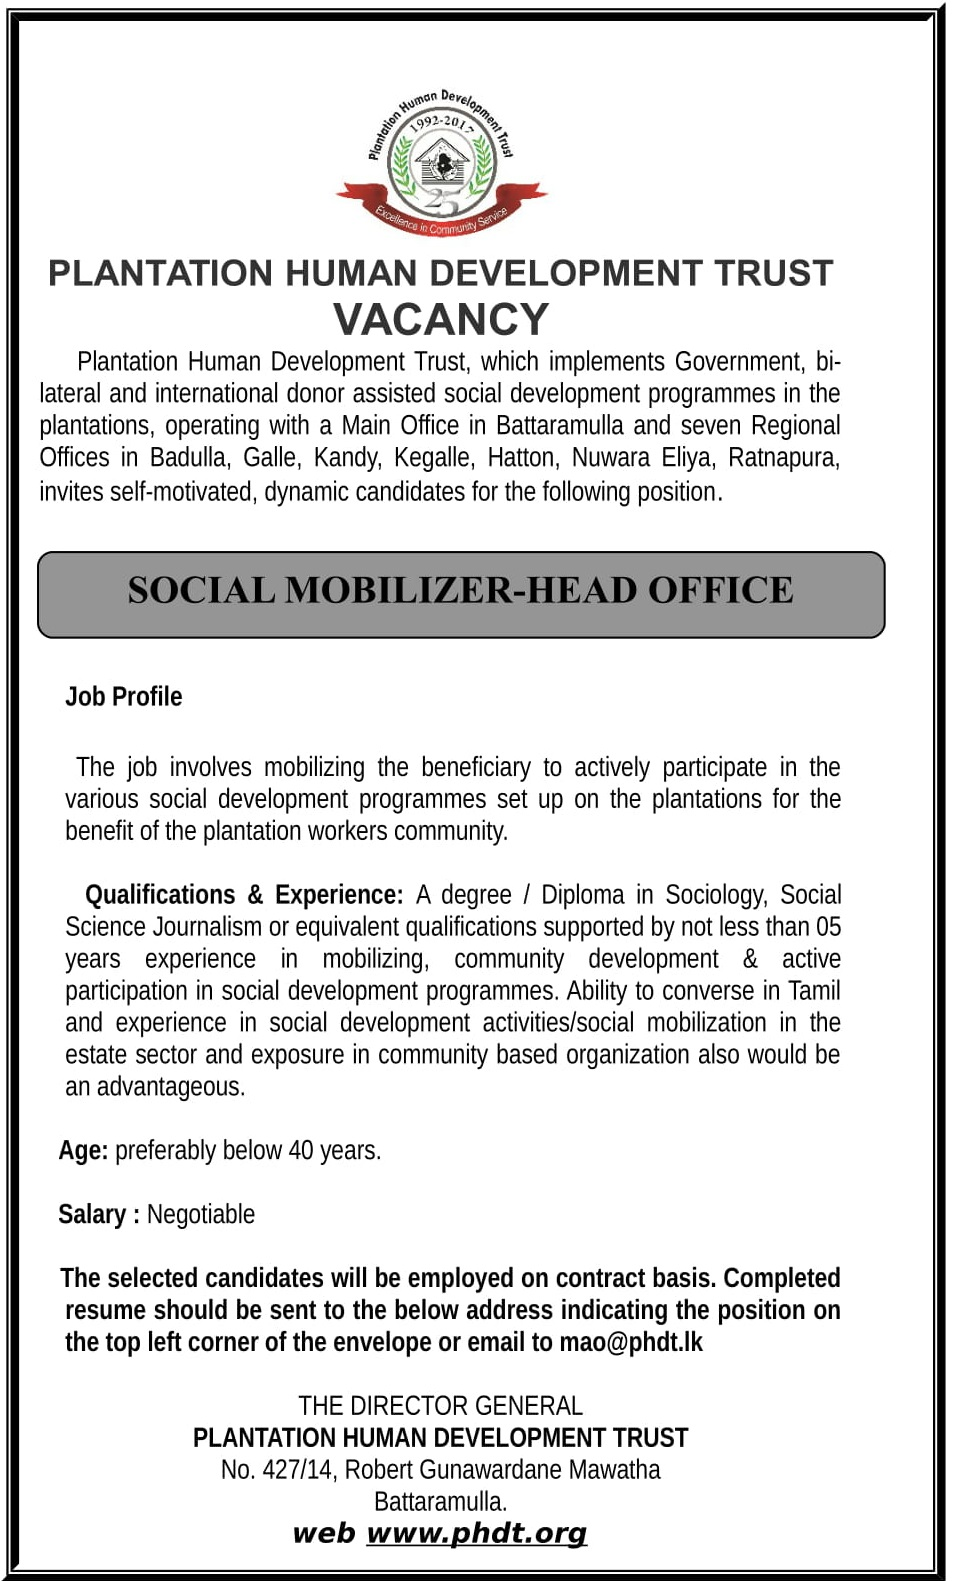 Vacancies – PLANTATION HUMAN DEVELOPMENT TRUST